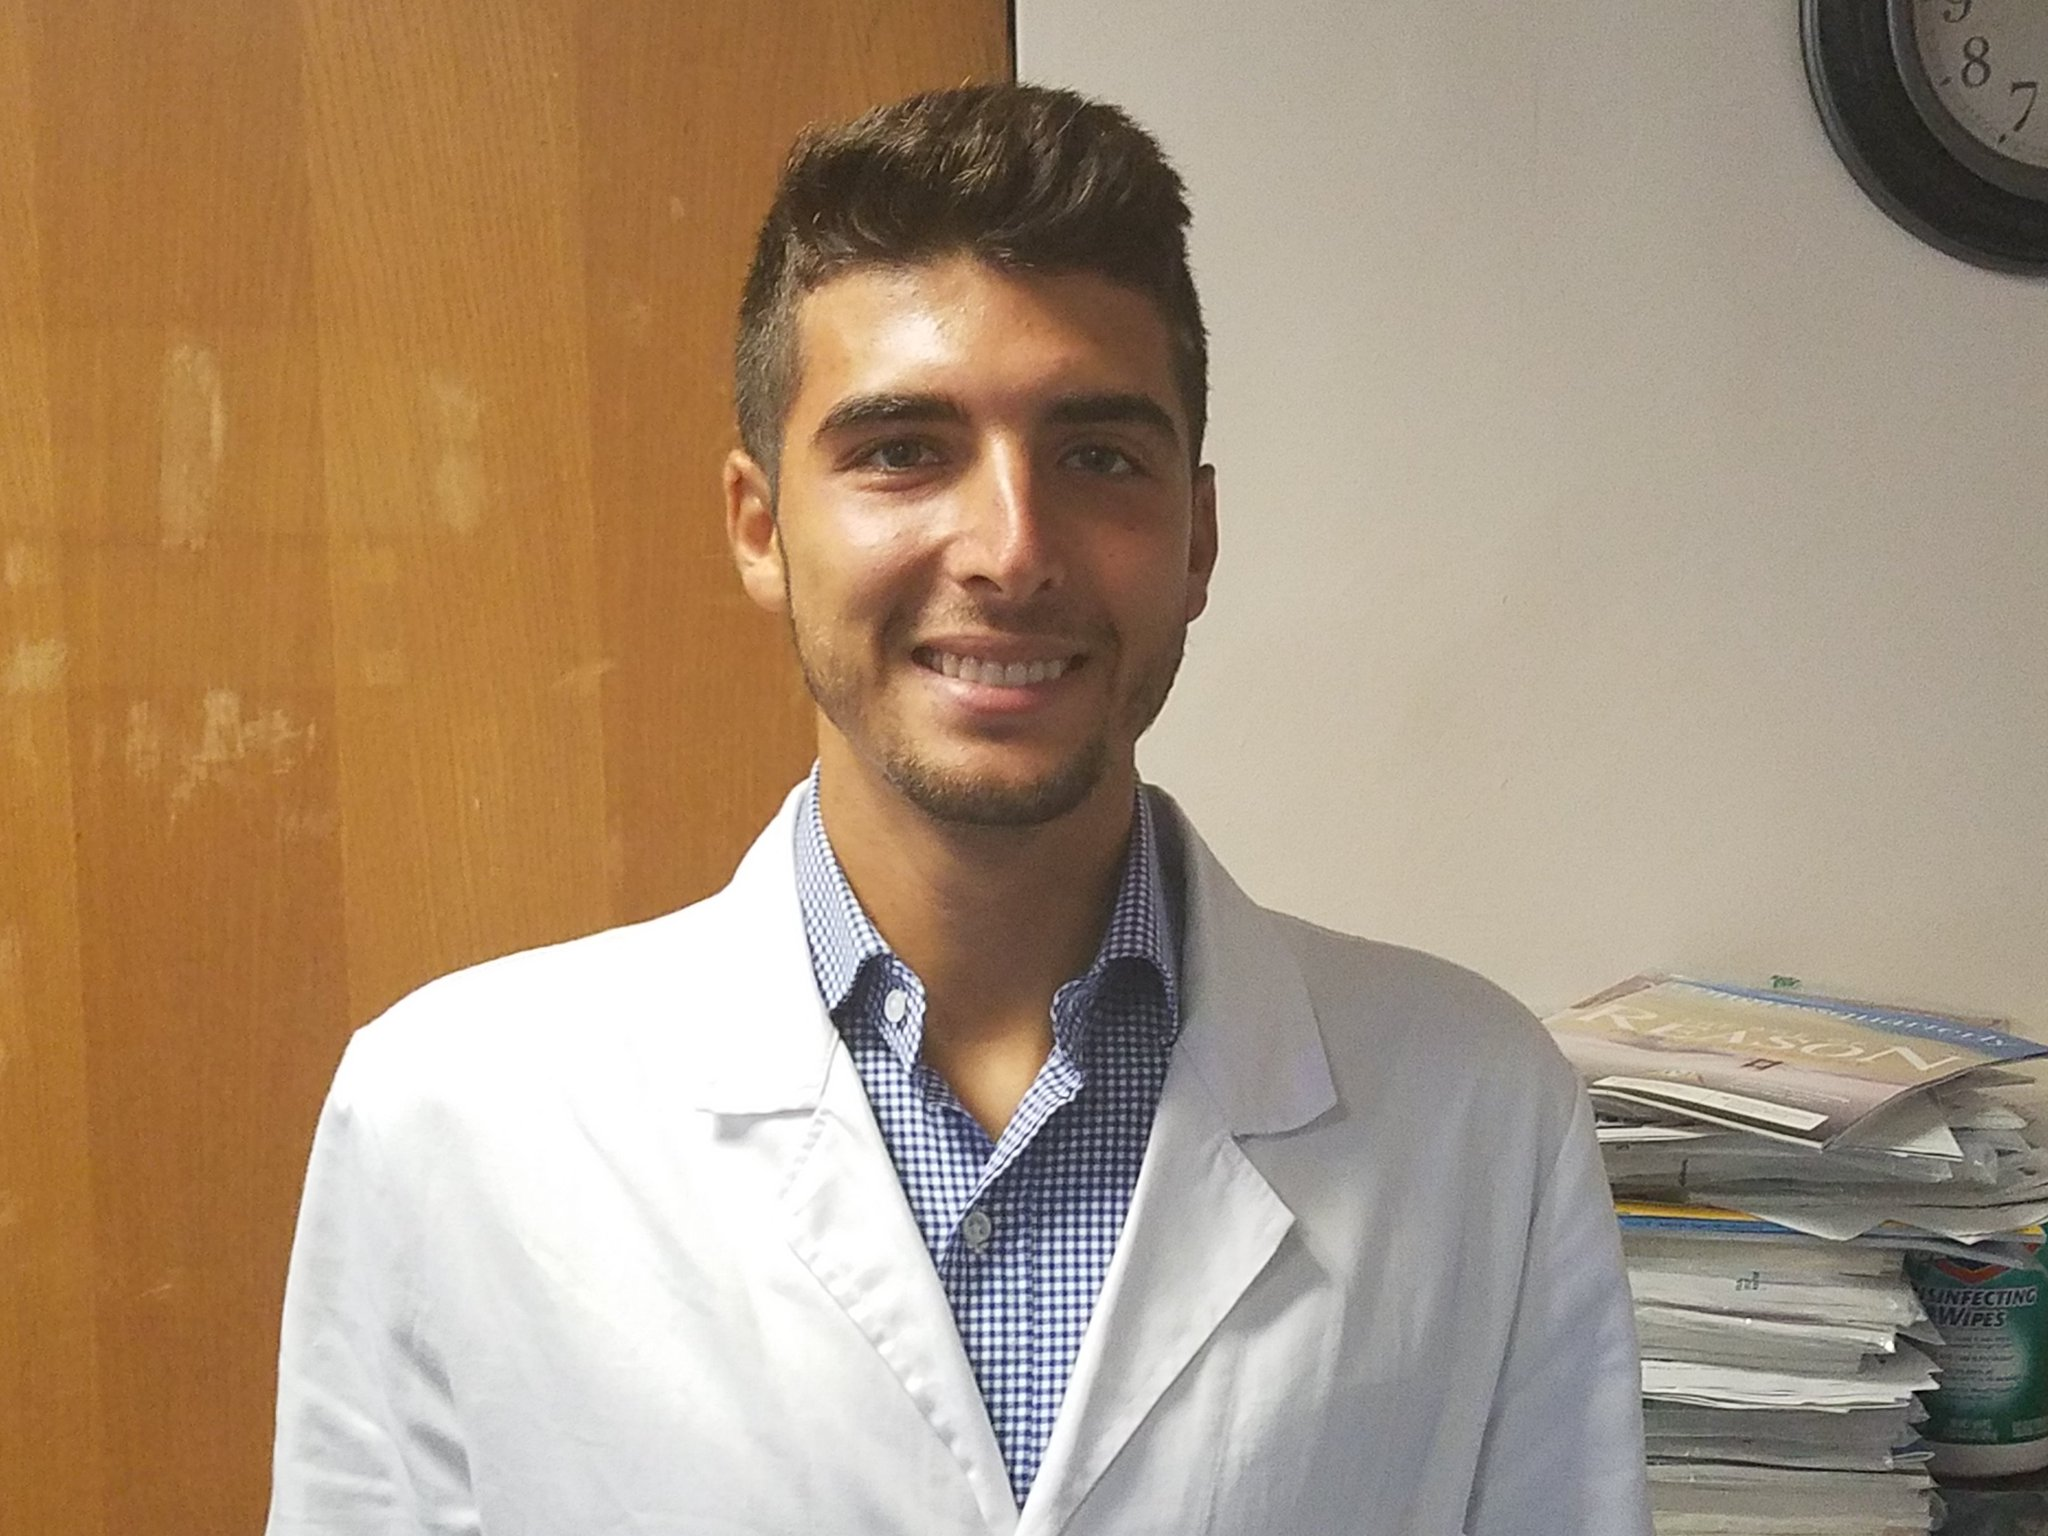 augusto at his rotation. Augusto completed his medical internship and developed a real bond with his preceptor and fellow rotators.